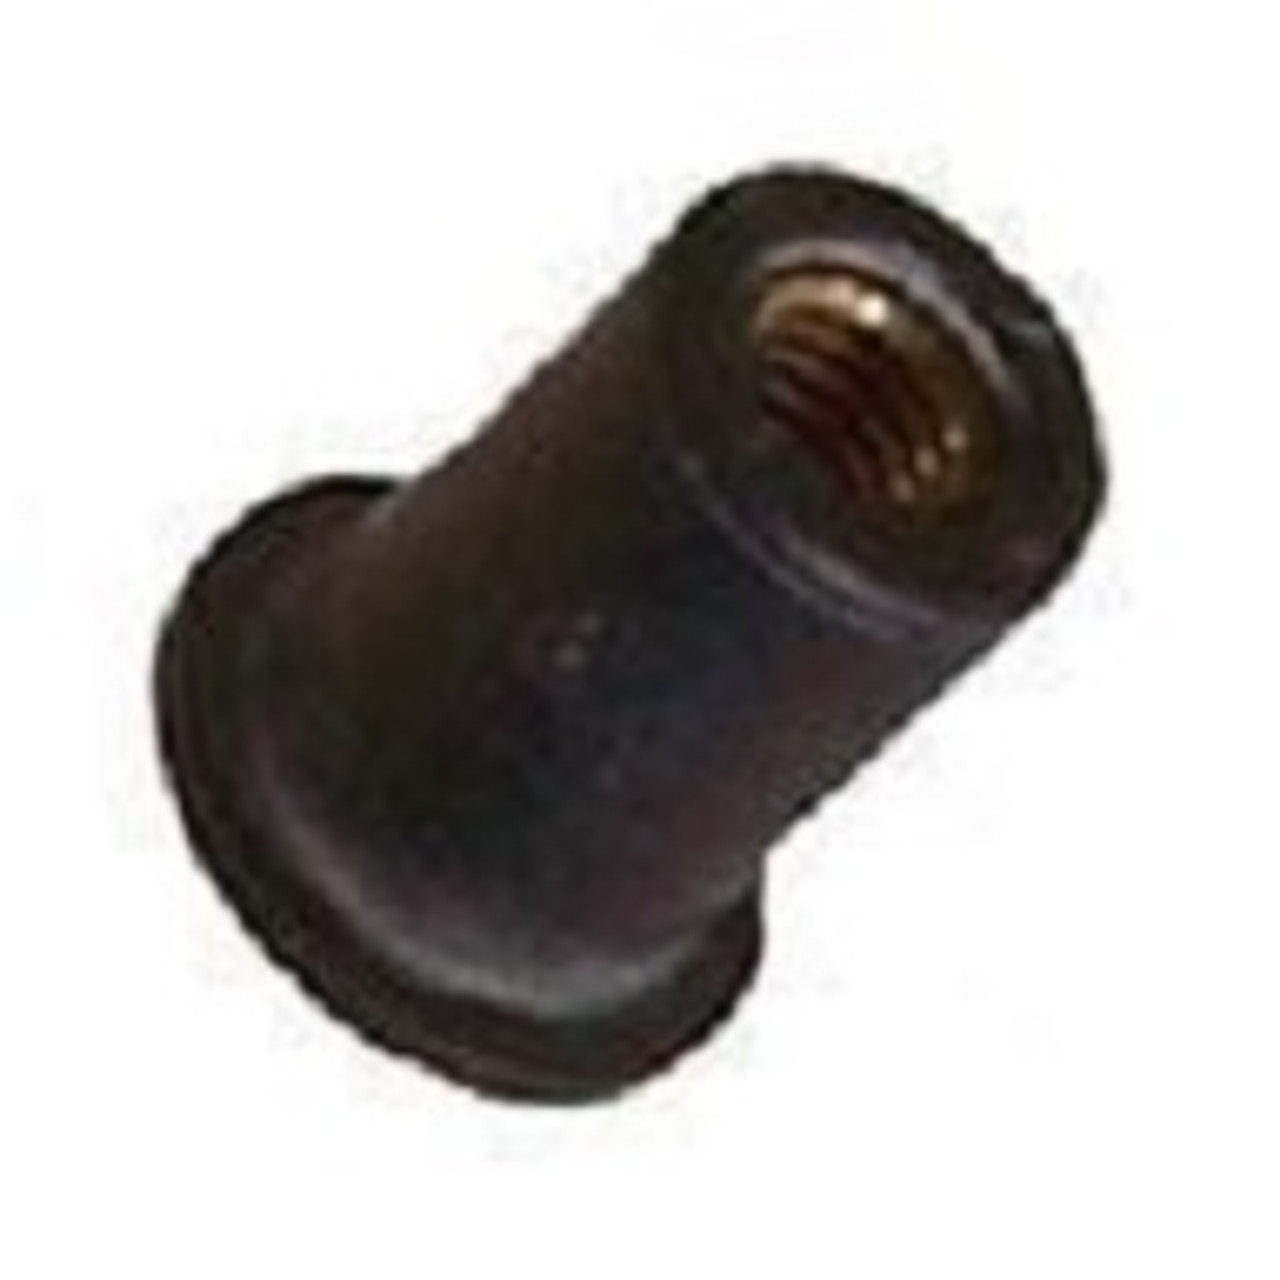 """Well Nut #8 -32 Thread Size Range: .015"""" - .156"""" Material: Neoprene With Captive Brass Nut Chrysler OEM#: 6026166 GM OEM#: 347065 Rear Compartment Cover Support 25 Per Box Click Next Images For Well nut Size Charts"""